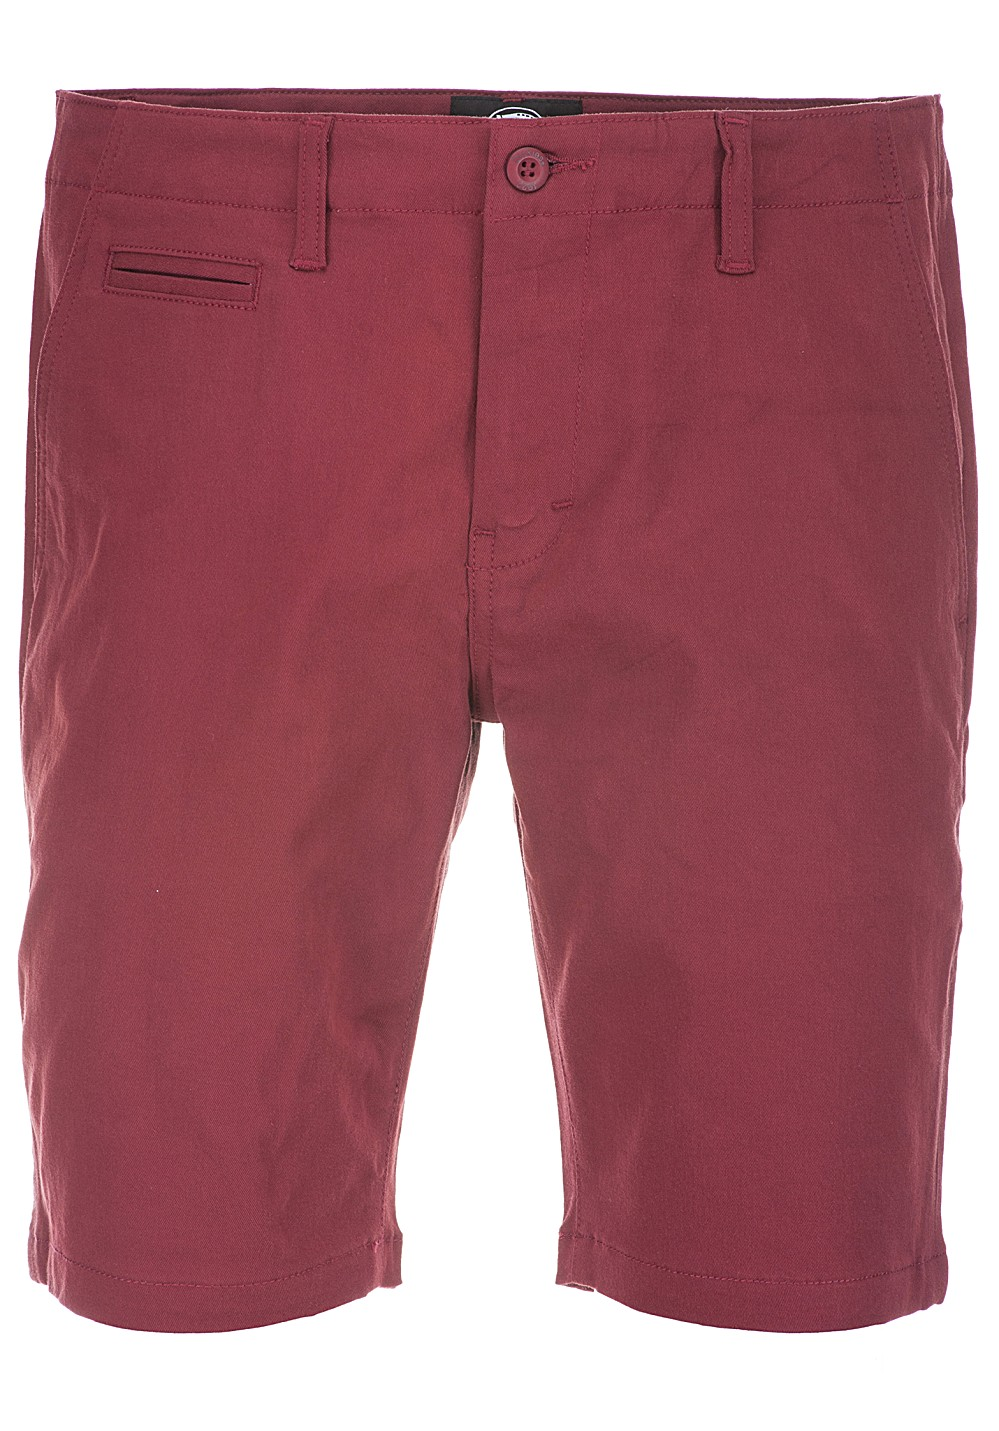 dickies palm springs chino shorts f r herren rot. Black Bedroom Furniture Sets. Home Design Ideas